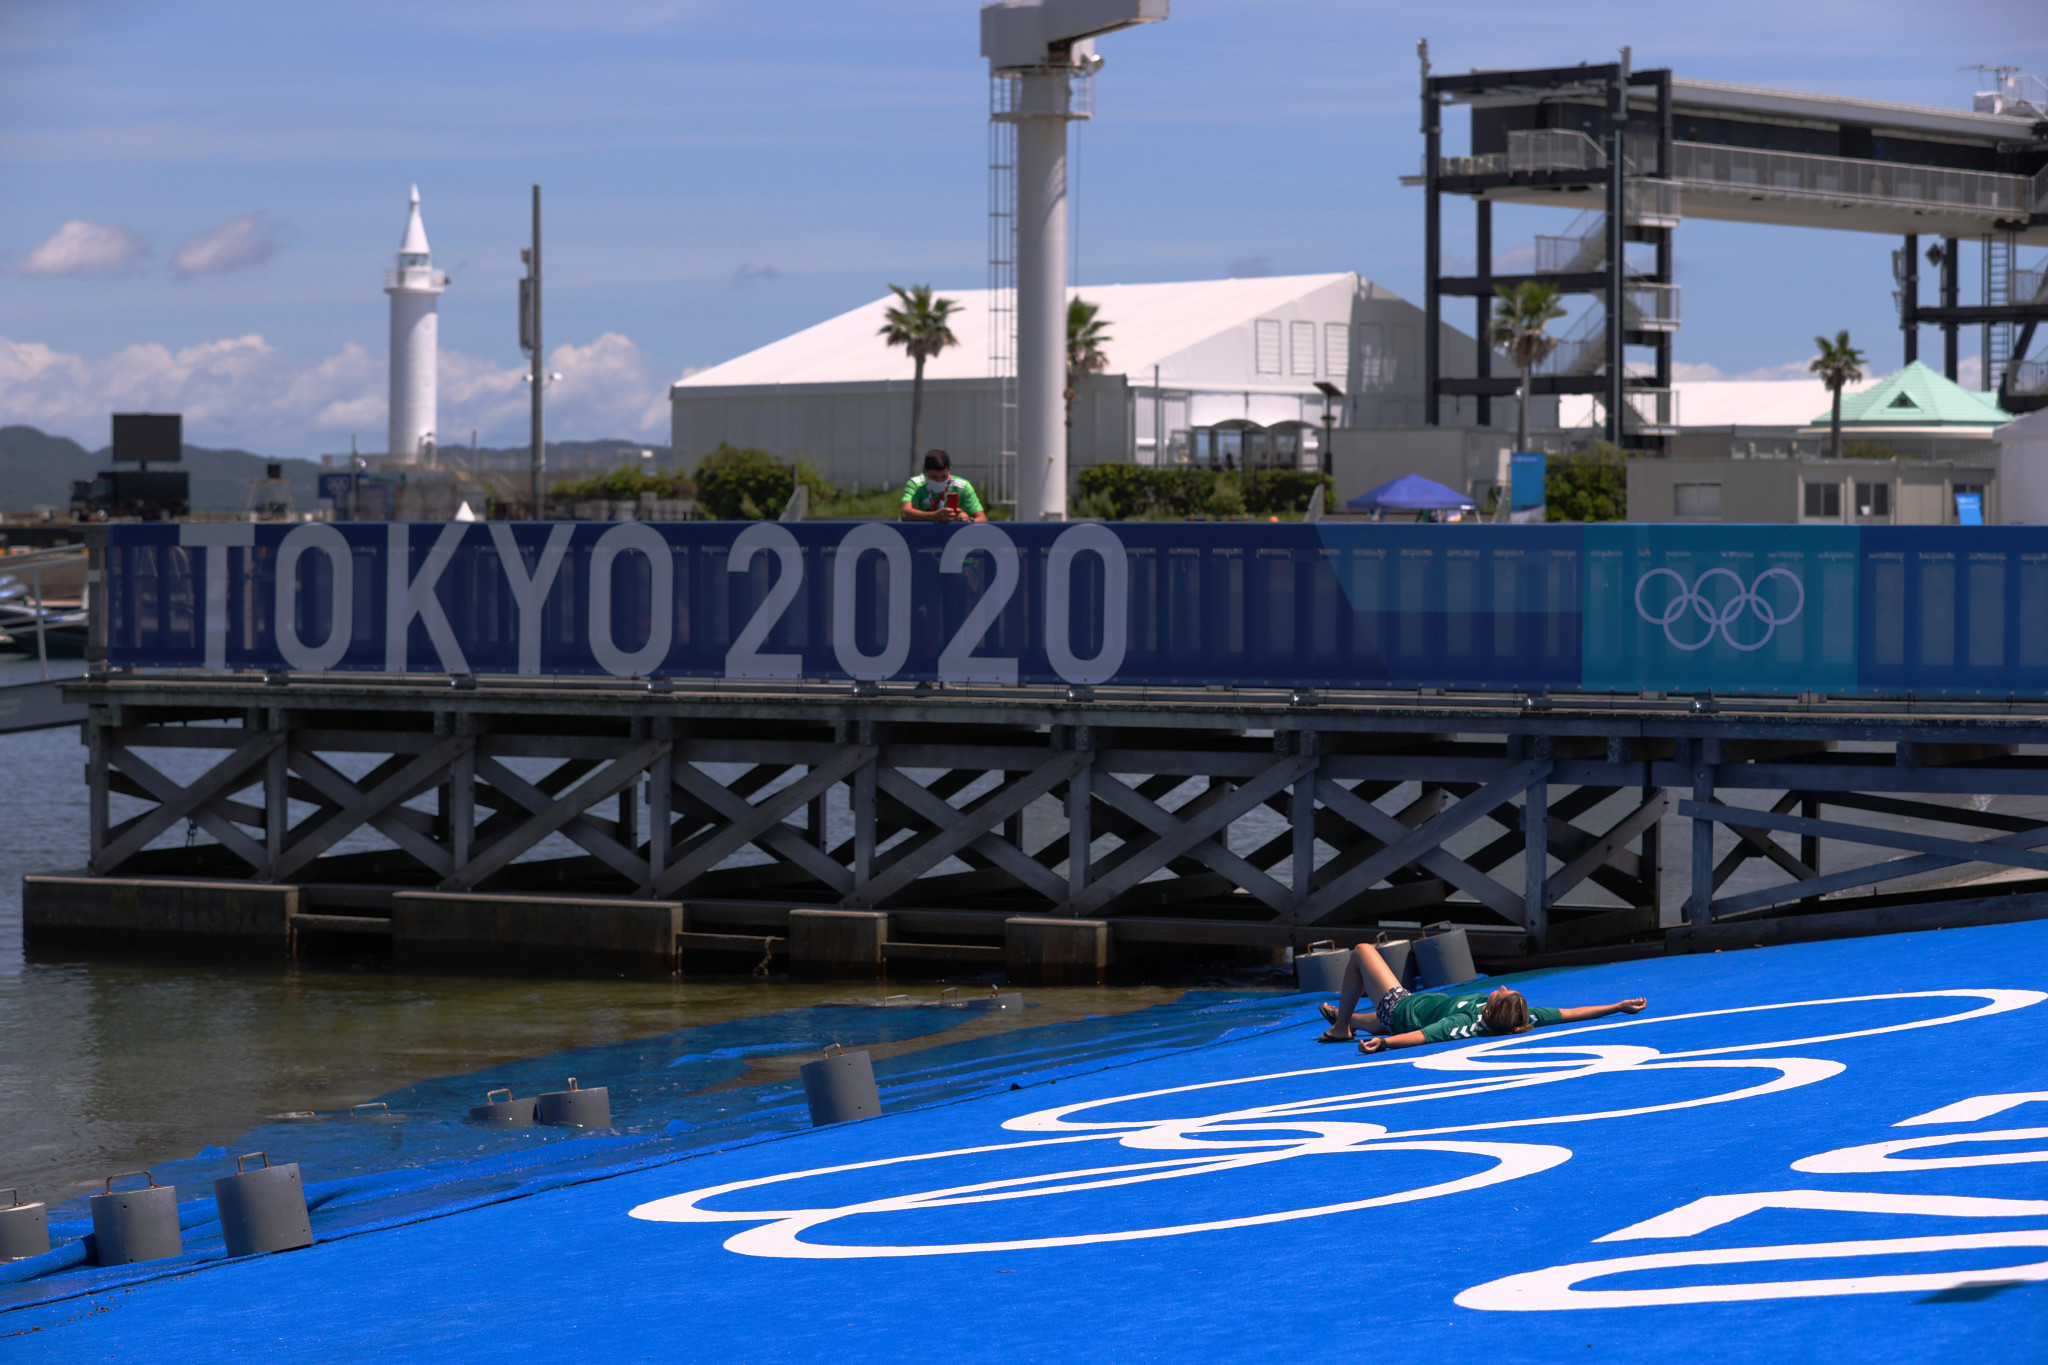 World Sailing expects its Tokyo 2020-related Olympic dividend to be no smaller than what it received for Rio 2016, which is cause for optimism for other International Federations ©Getty Images